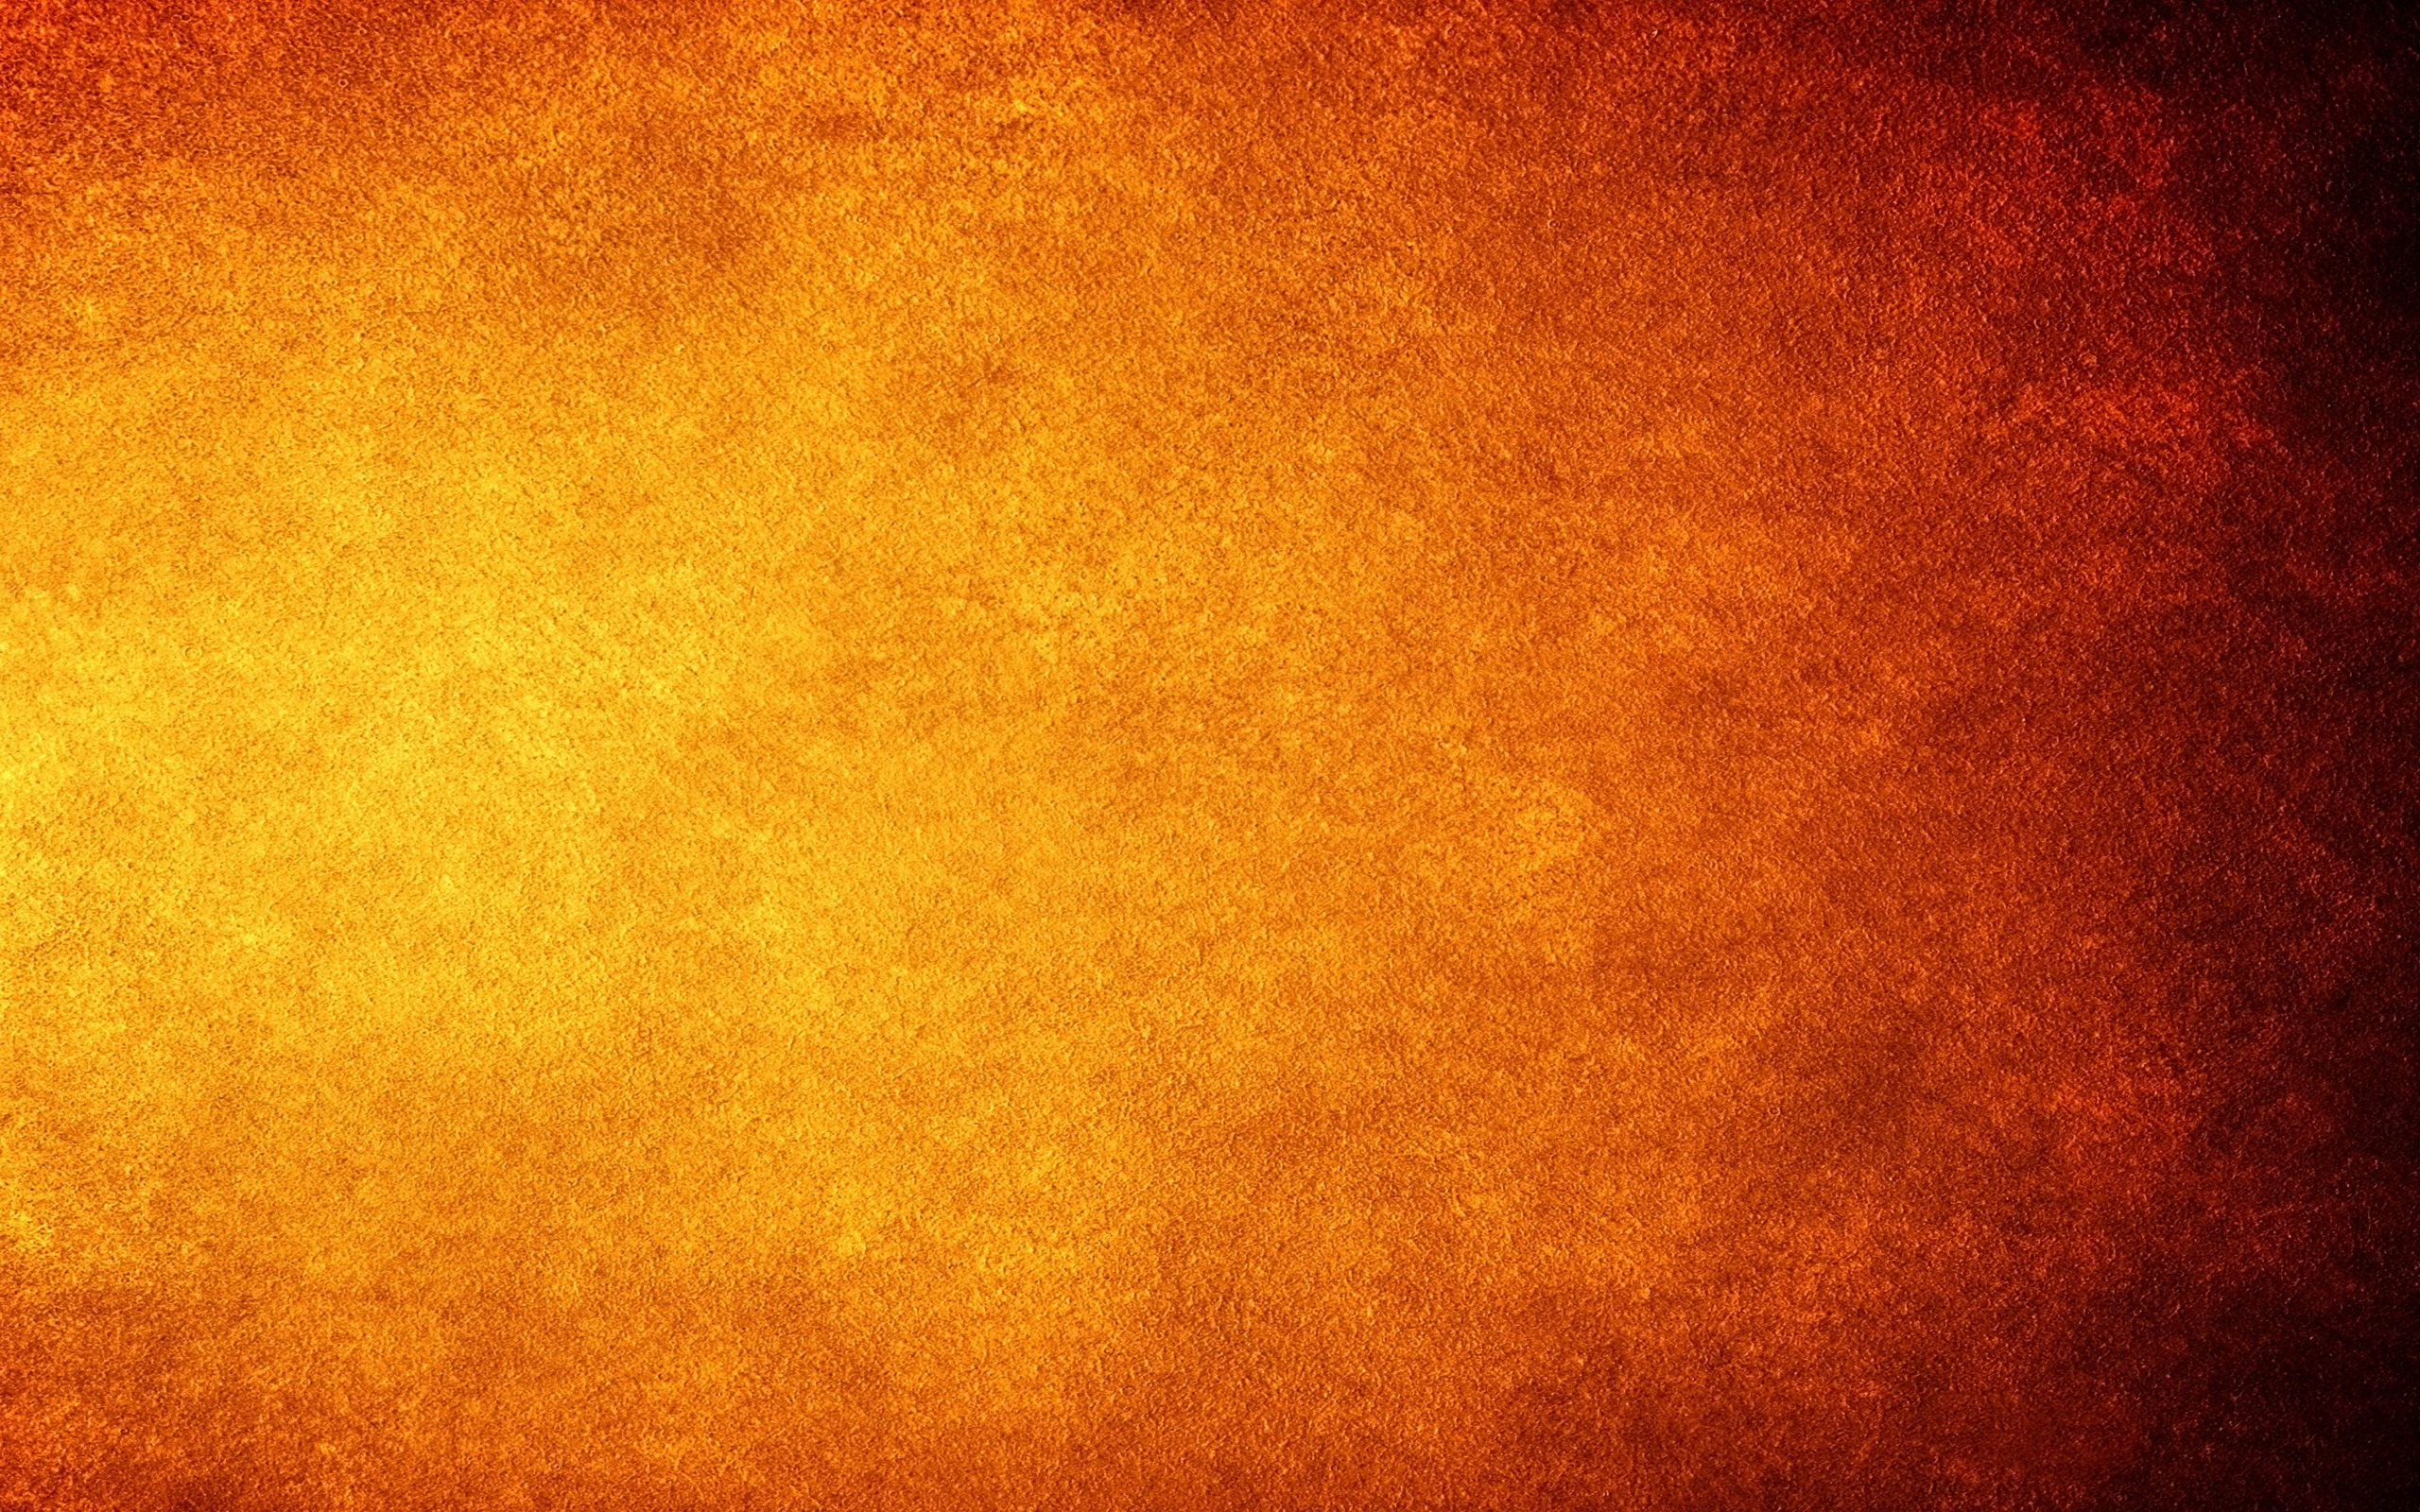 Orange Background Wallpapers HD Backgrounds Images Pics Photos 2560x1600